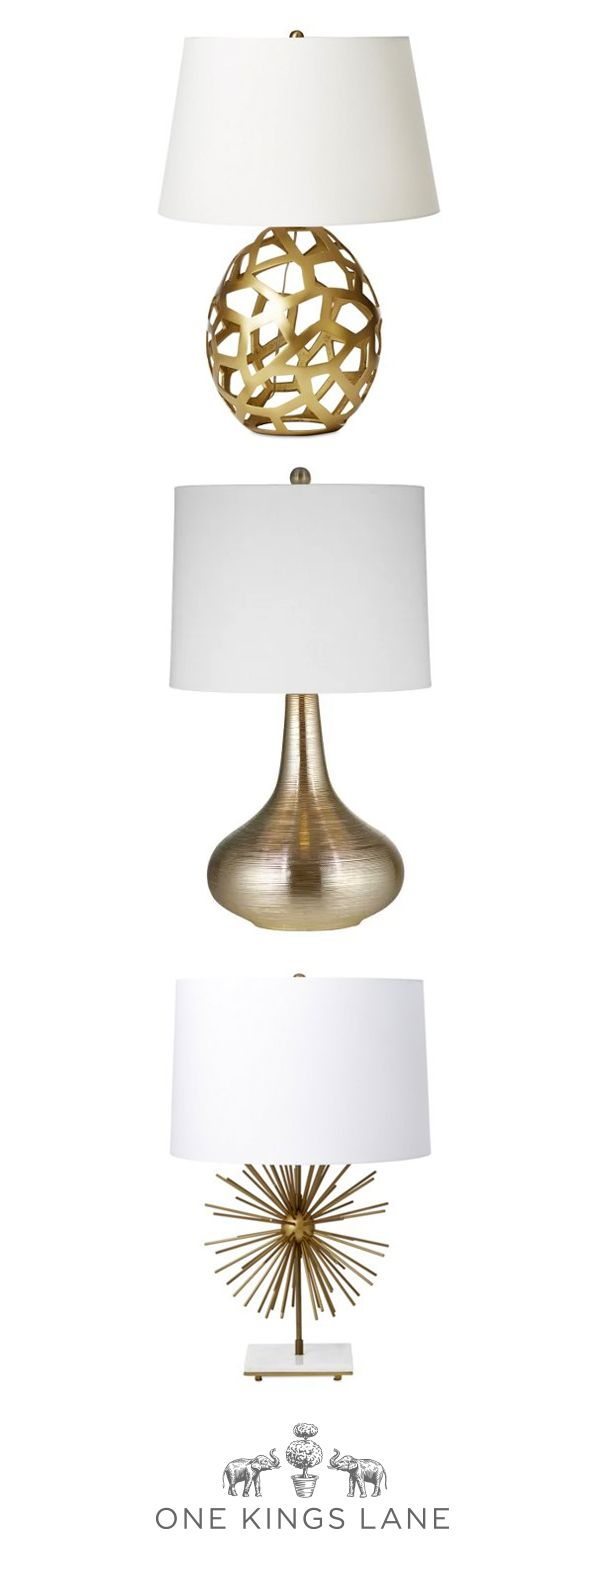 77 best Lamps and Lampshades images on Pinterest | Chandeliers, Home ...